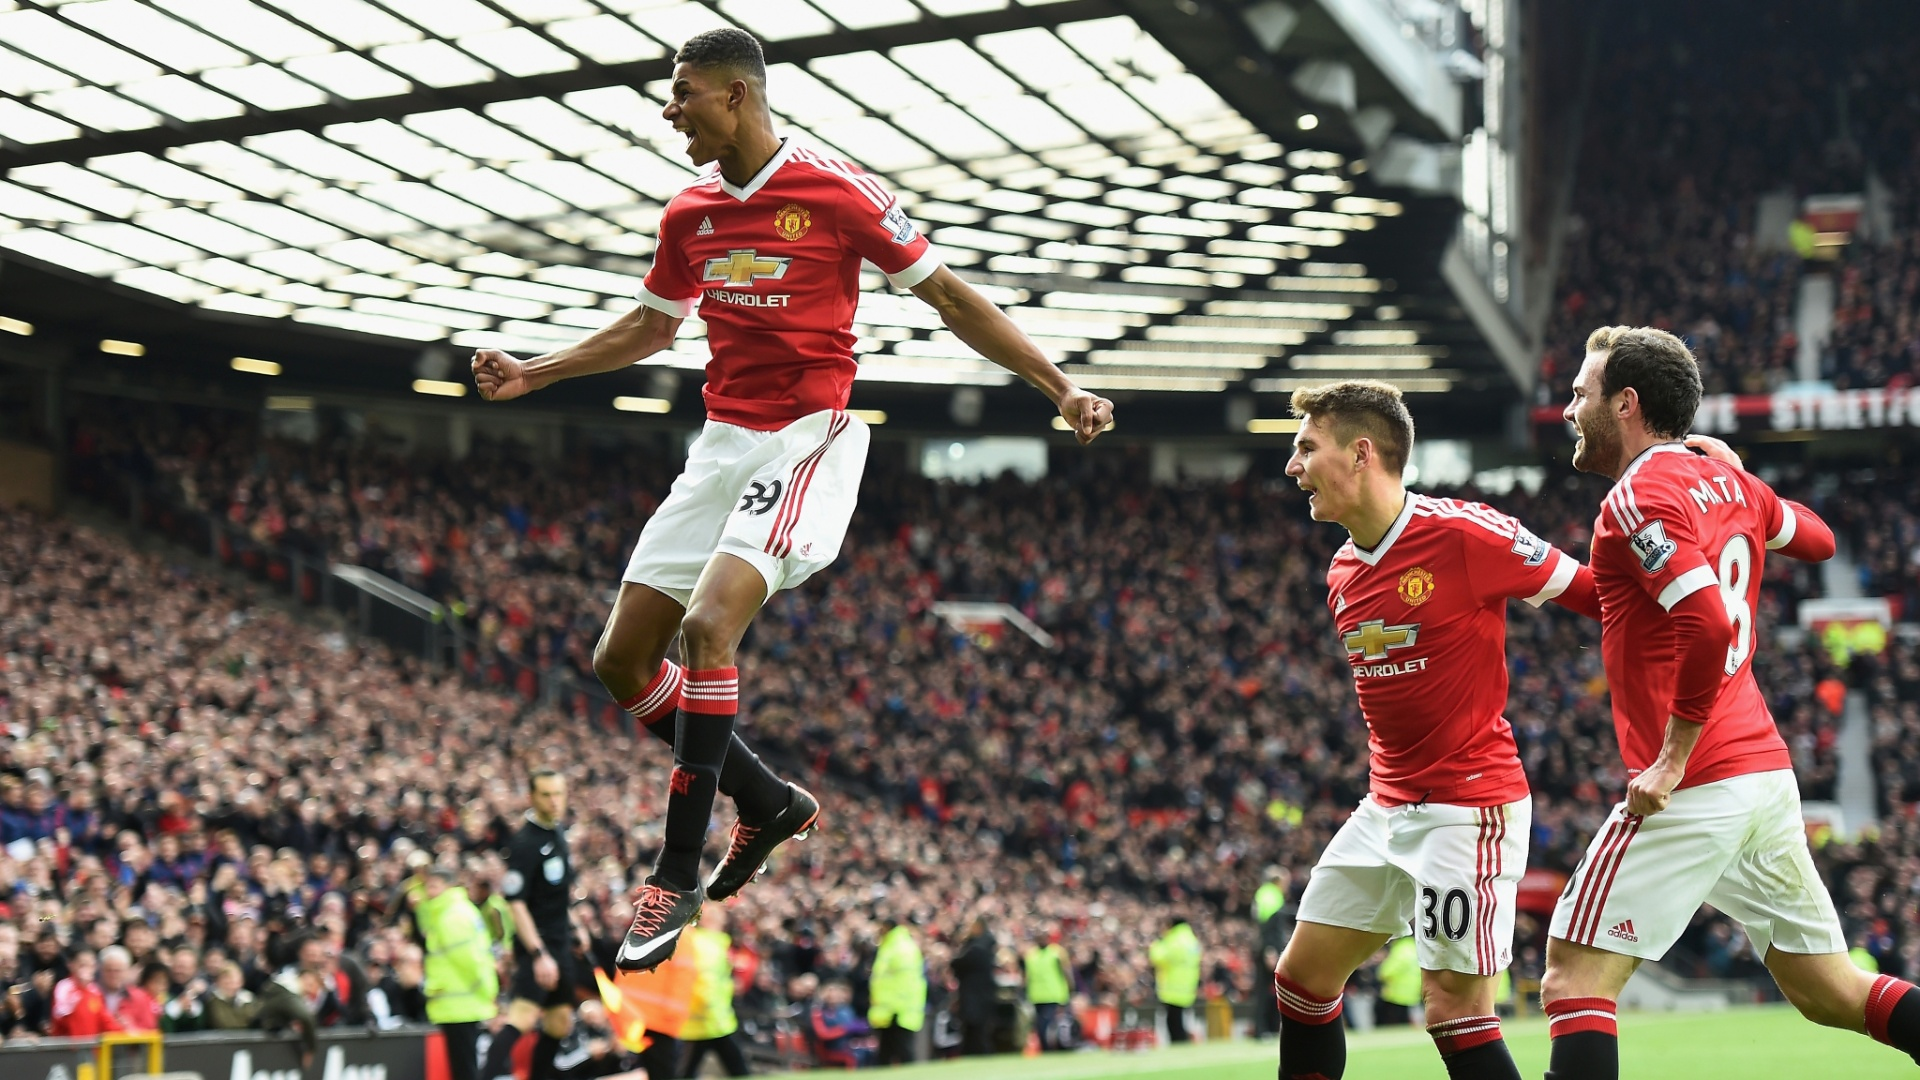 Rashford, do Manchester United, comemora gol contra o Arsenal